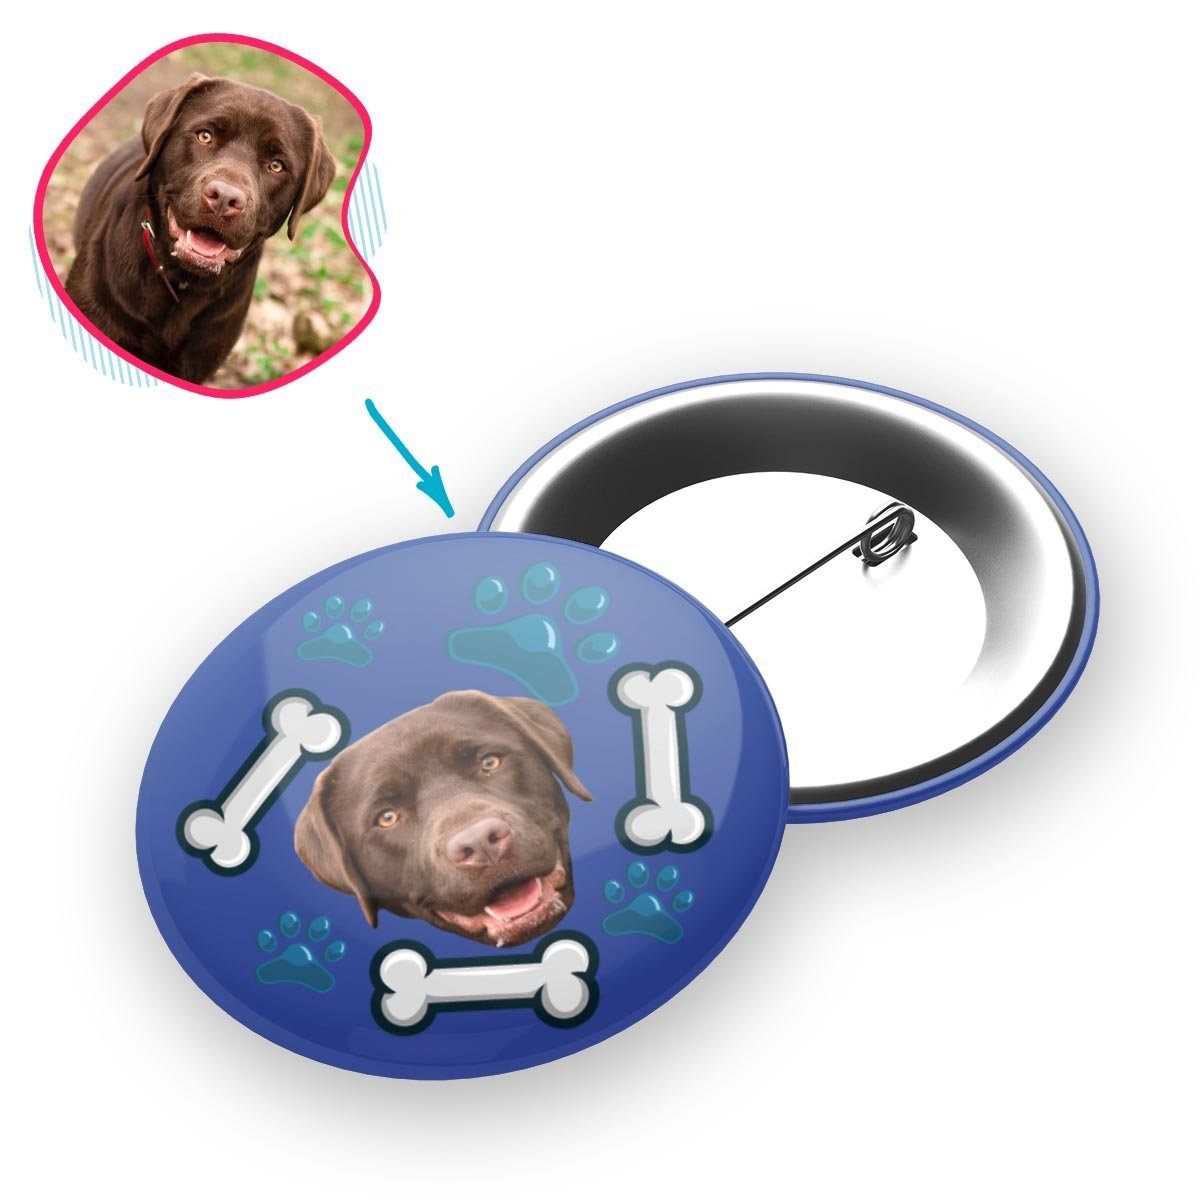 darkblue Dog pin personalized with photo of face printed on it